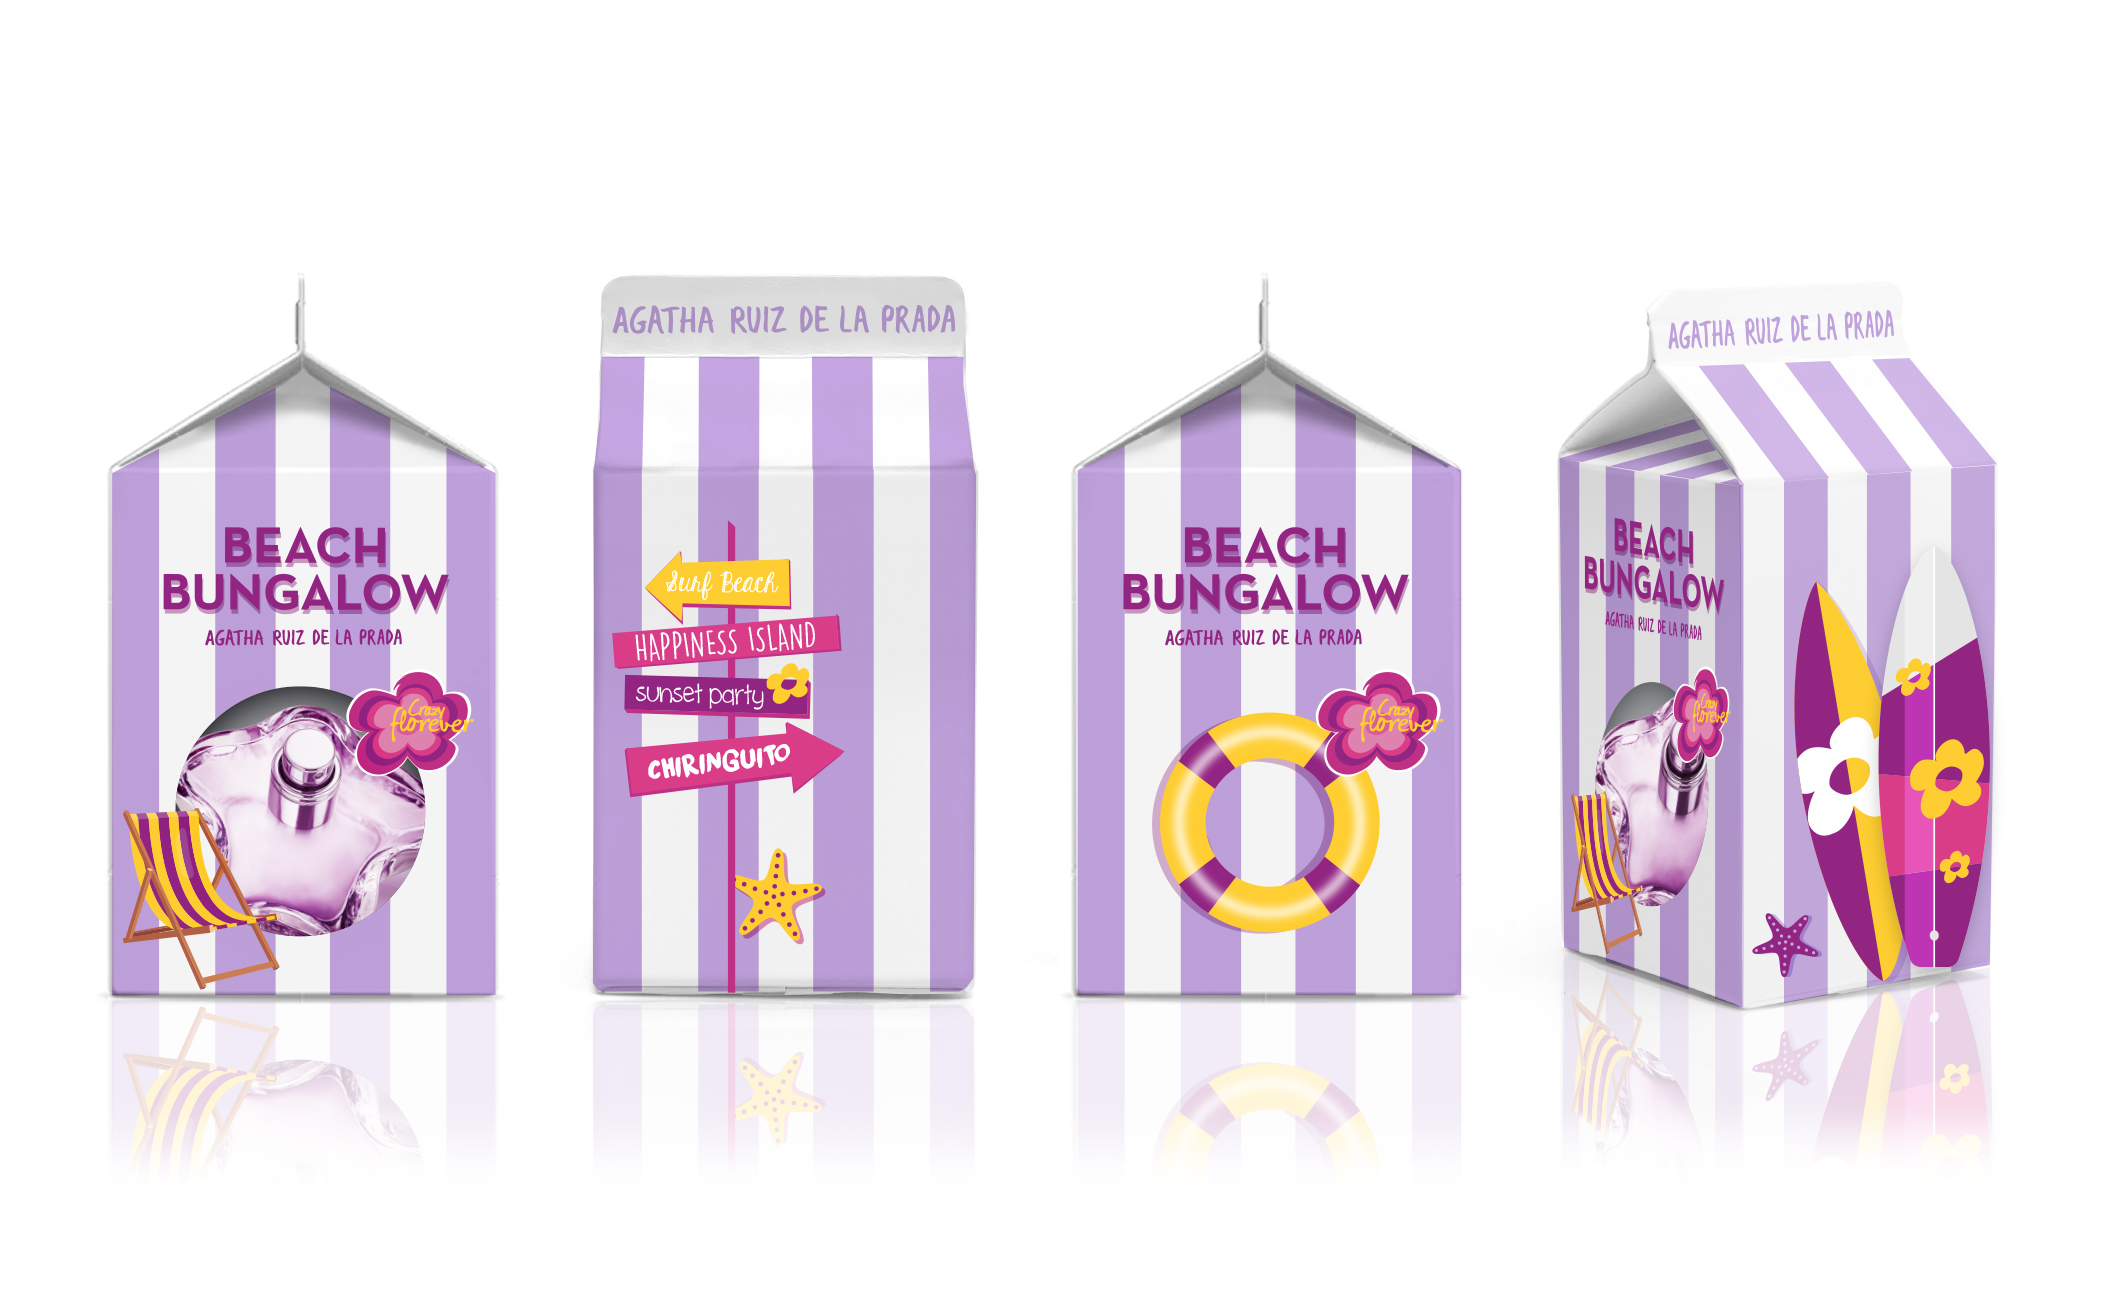 """Beach Bungalow"" Special Edition x Agatha Ruiz de la Prada fragrances"